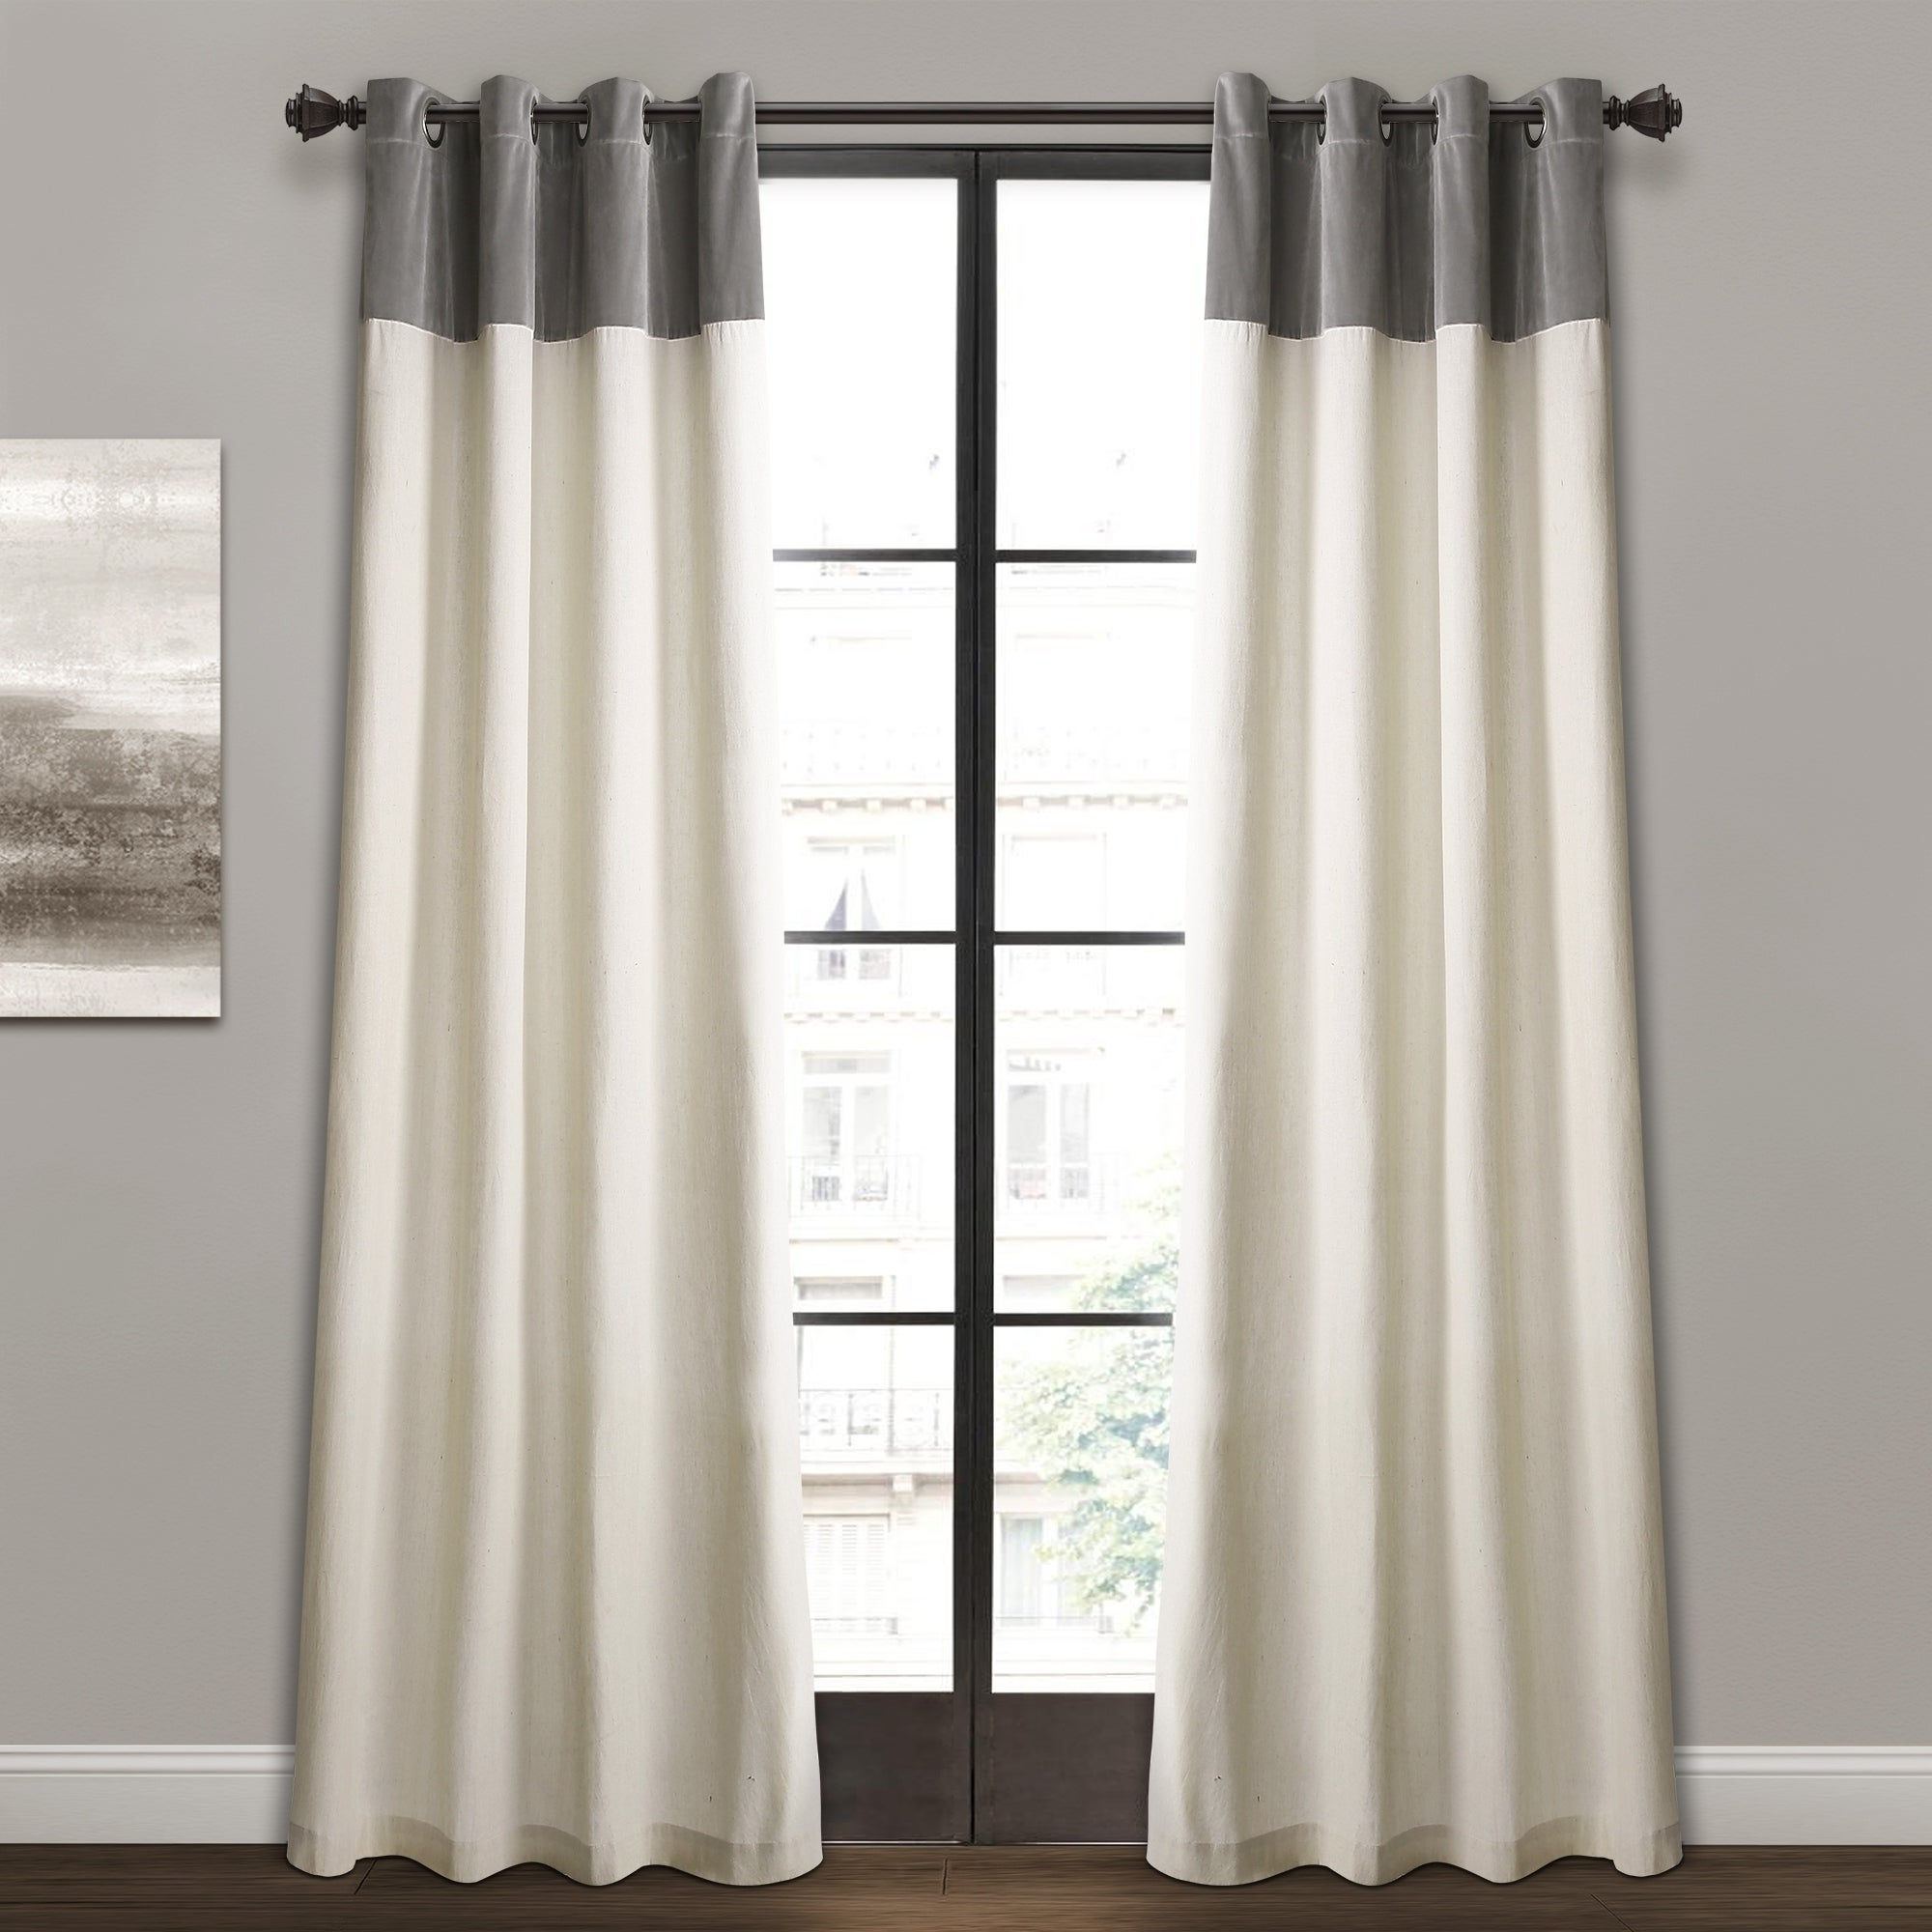 Pairs To Go Victoria Voile Curtain Panel Pairs Intended For Most Current Details About Lush Decor Milo Linen Window Curtain Panel Pair (View 16 of 20)